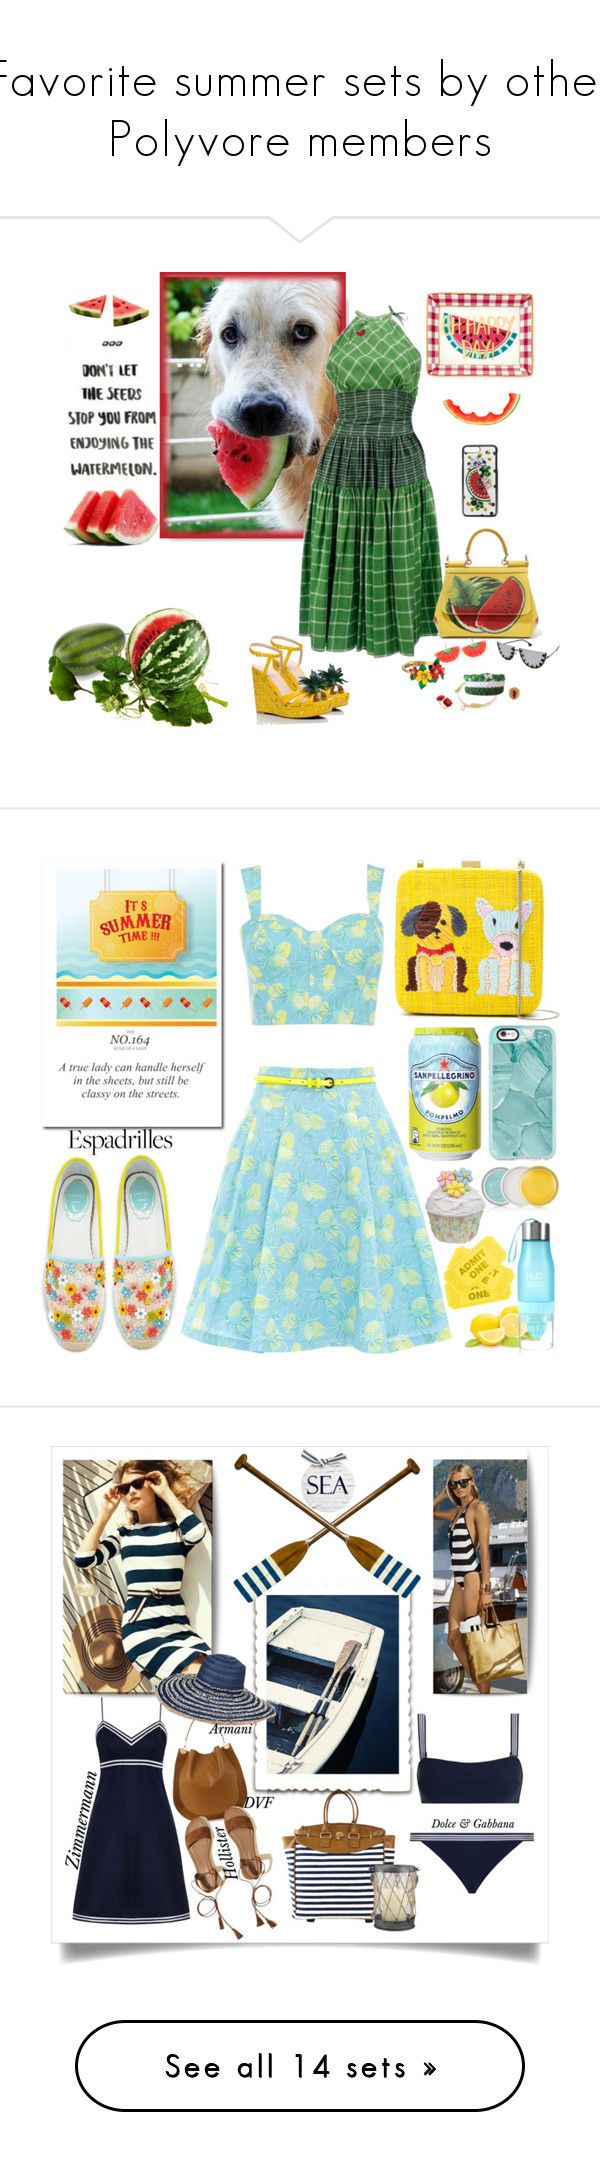 """""""Favorite summer sets by other Polyvore members"""" by sunnydays4everkh ❤ liked on Polyvore featuring Kate Spade, Alice + Olivia, Armitage Avenue, Draper James, Betsey Johnson, Les Néréides, Dolce&Gabbana, cuteboxforladies, Oasis and Serpui"""